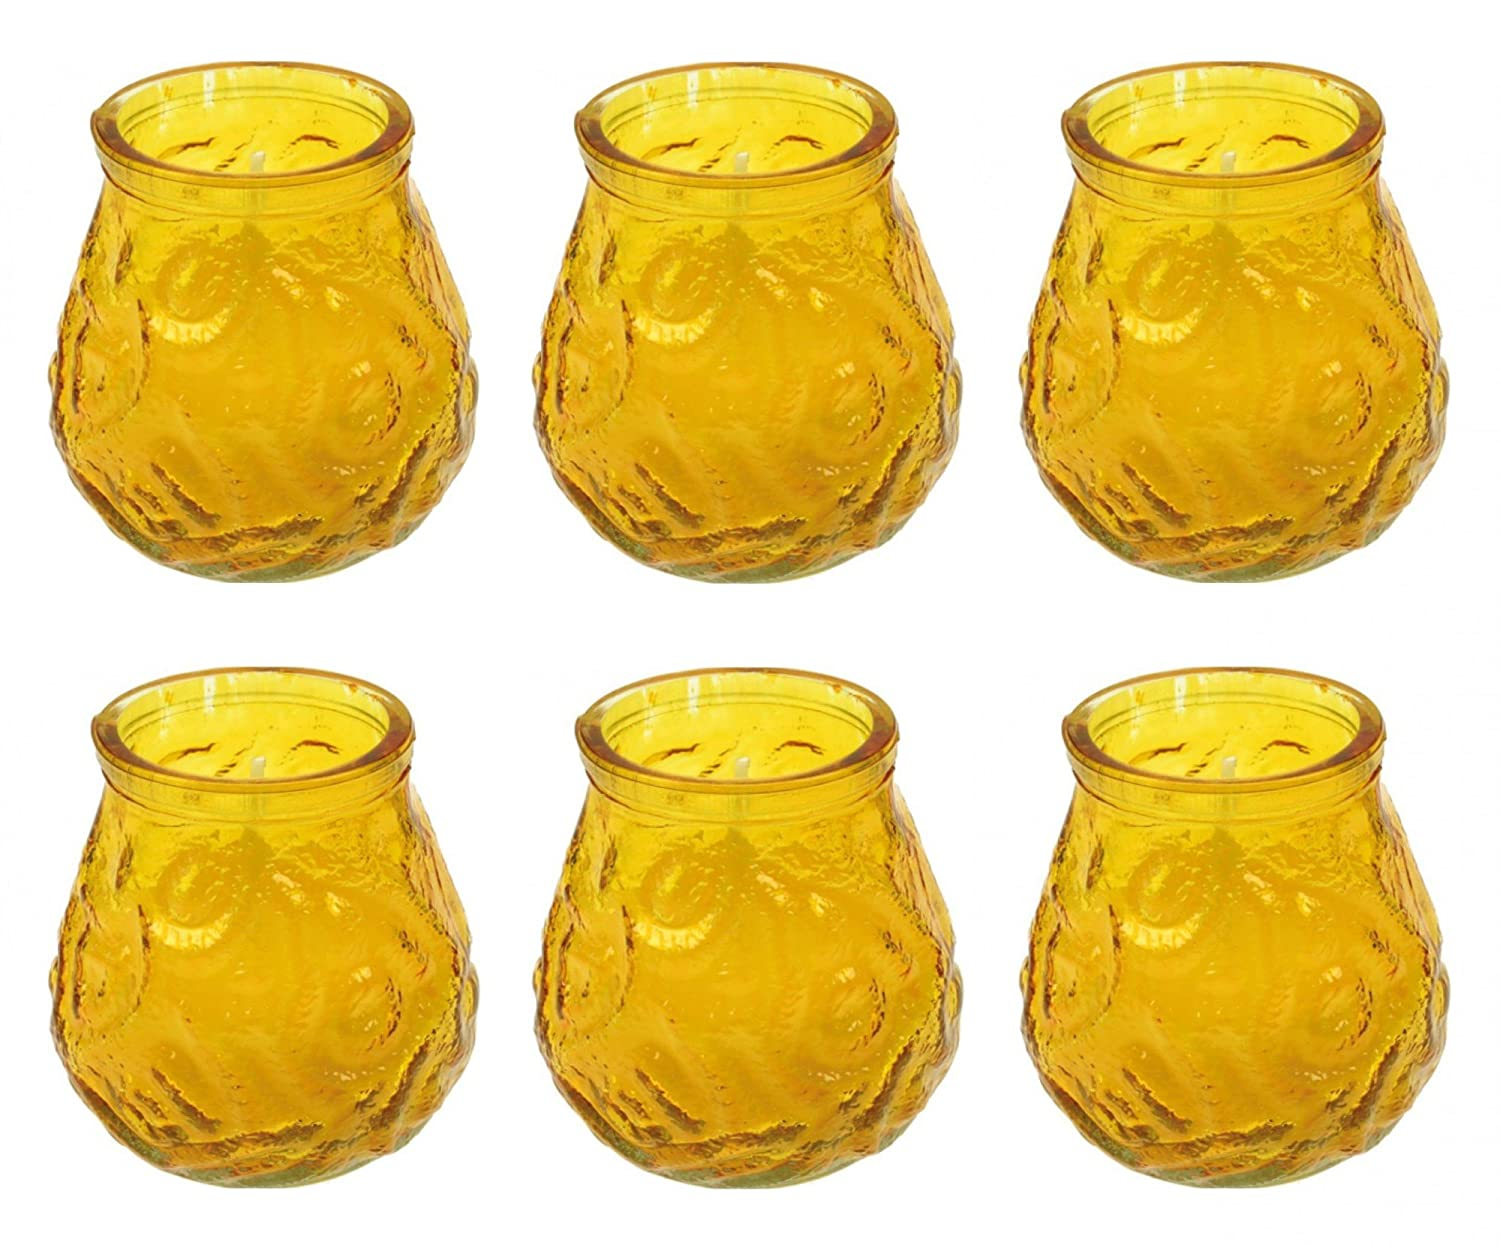 EuroDiscount Citronella Tea Light Holder Glass Garden Party Anti Mosquitoes Candles Pack of 6